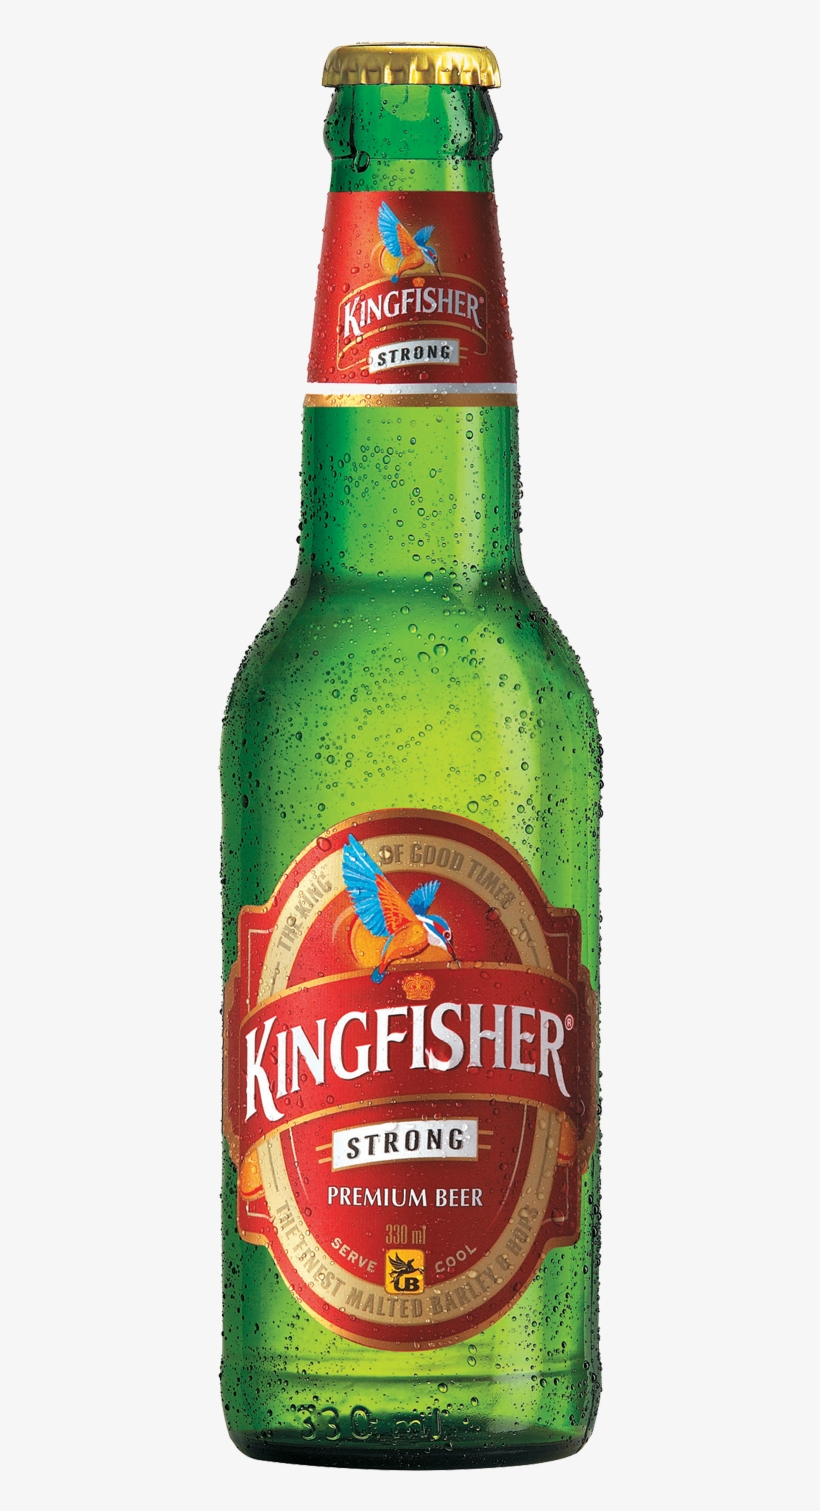 Kingfisher Strong Premium Beer 330ml.